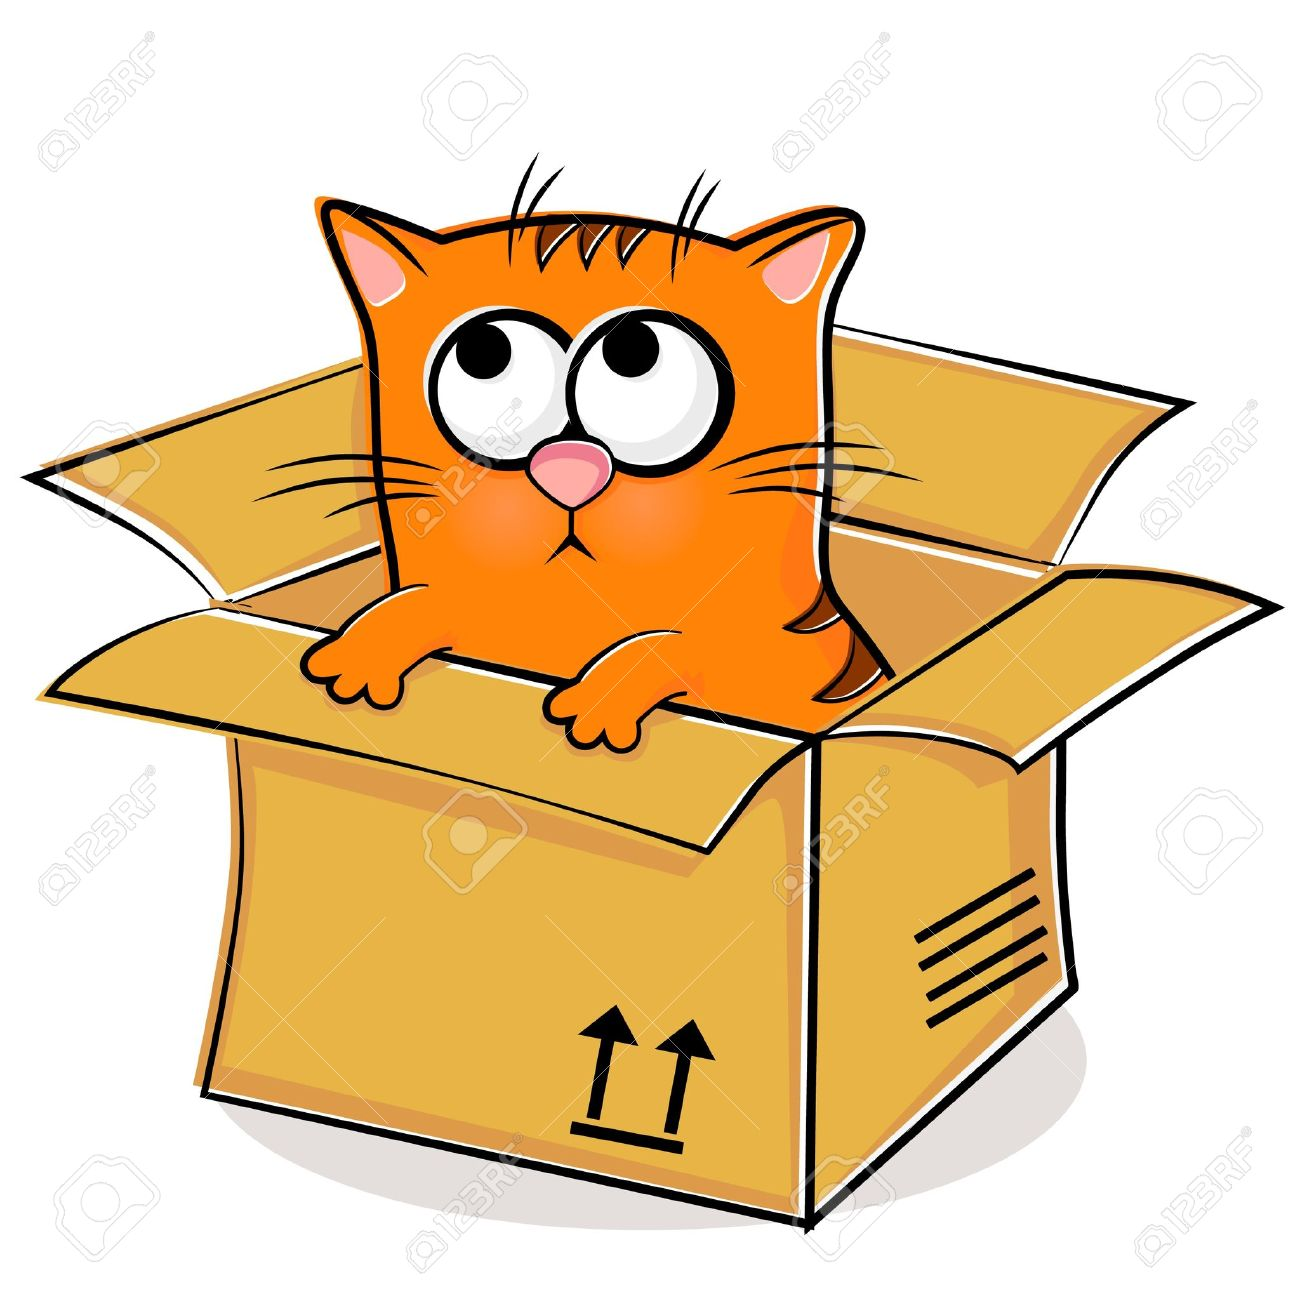 illustration of nice red kitten in box royalty free cliparts